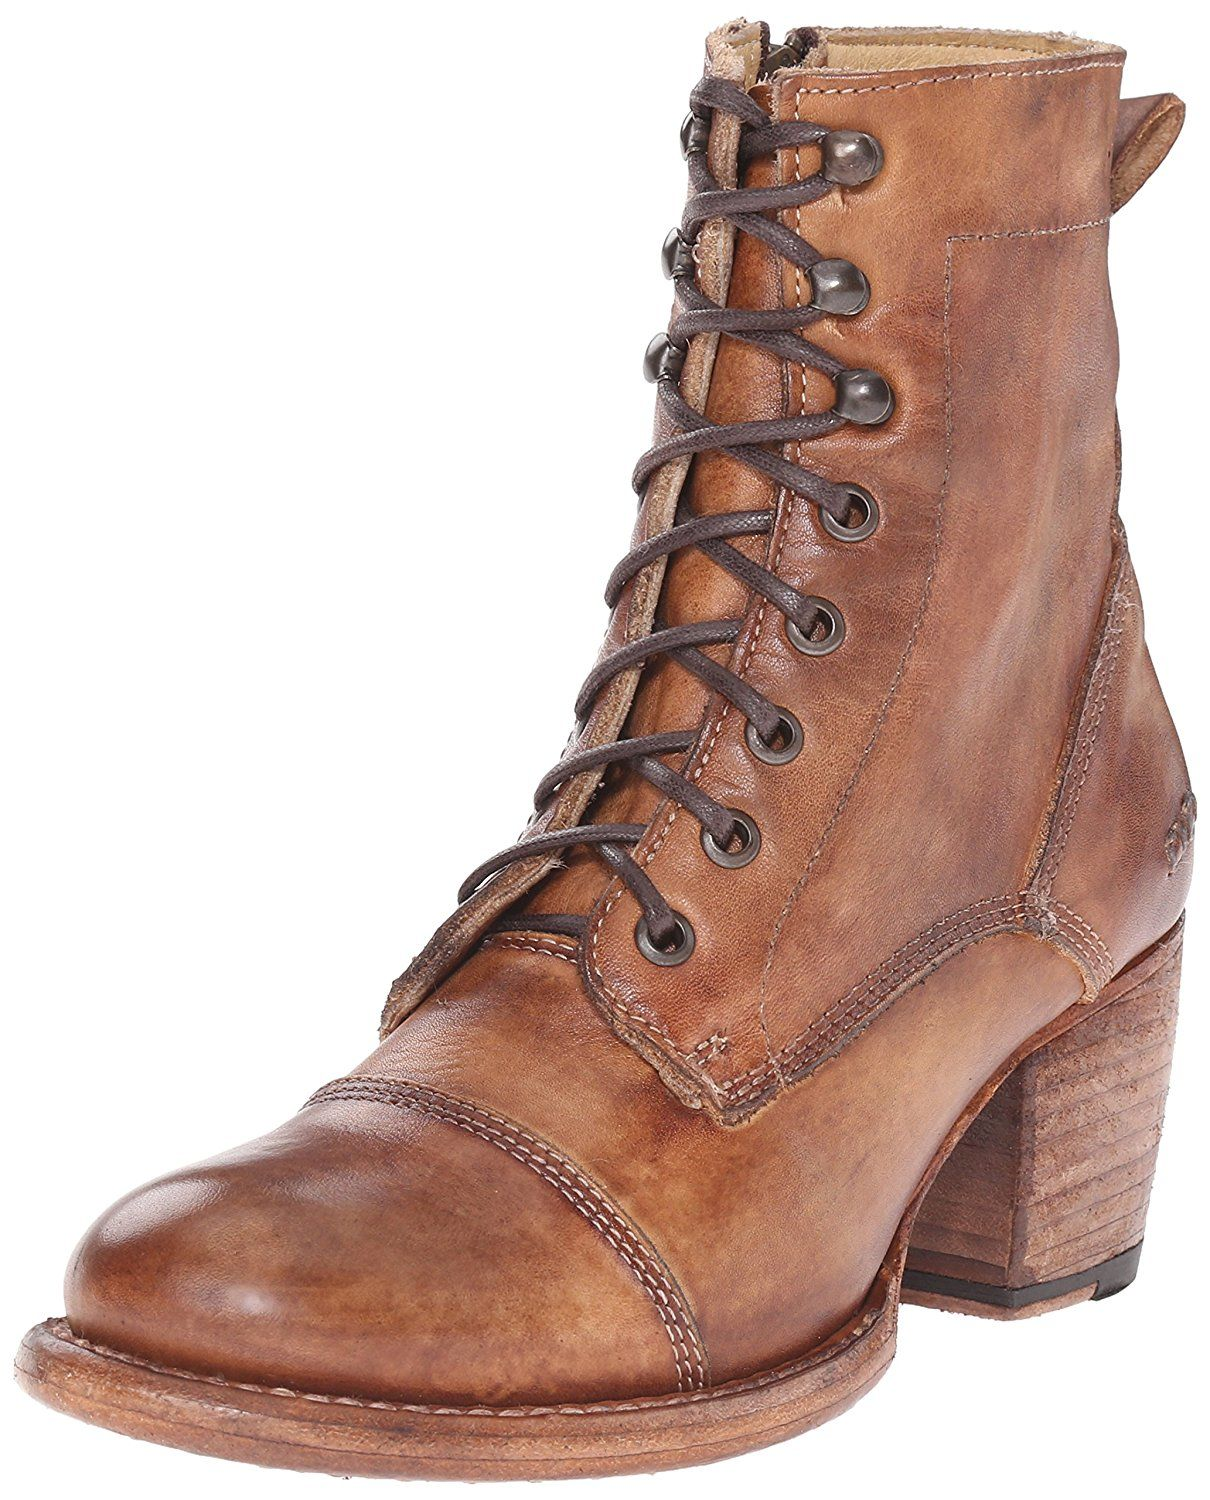 Bed Stu Women's Oath Boot >>> You can get more details by